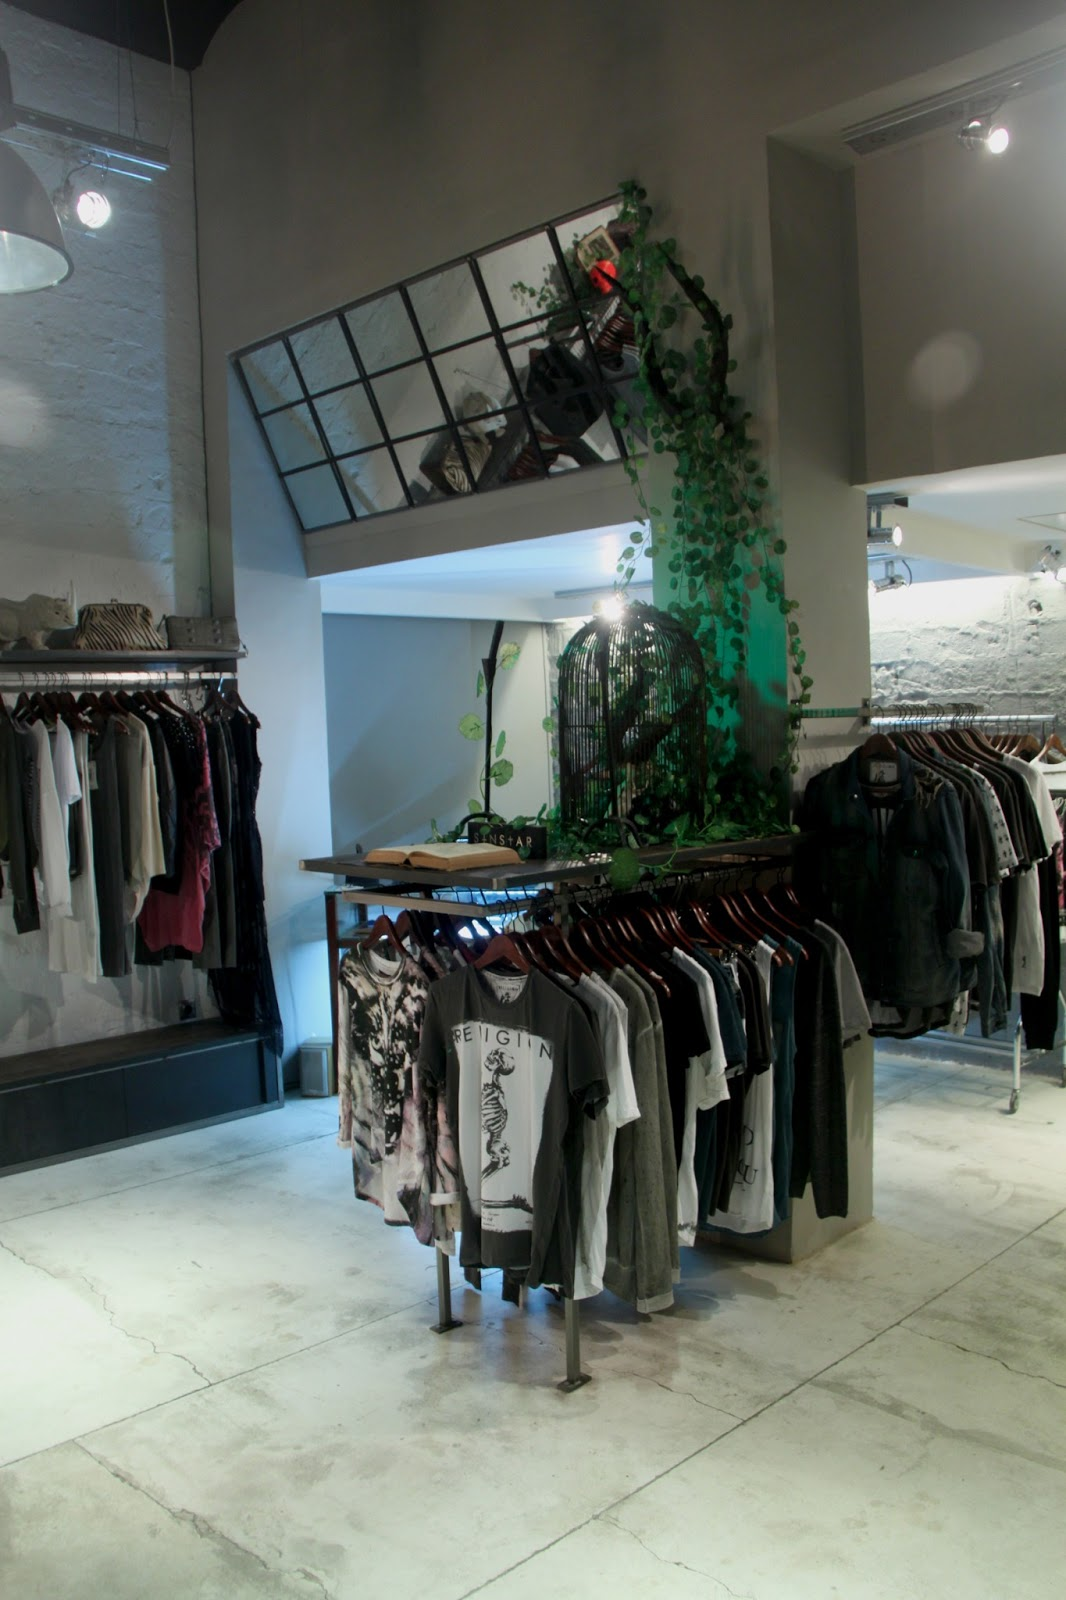 56cbd37df7ae Otherwise, sit back and have a look at their newly Religionified store.